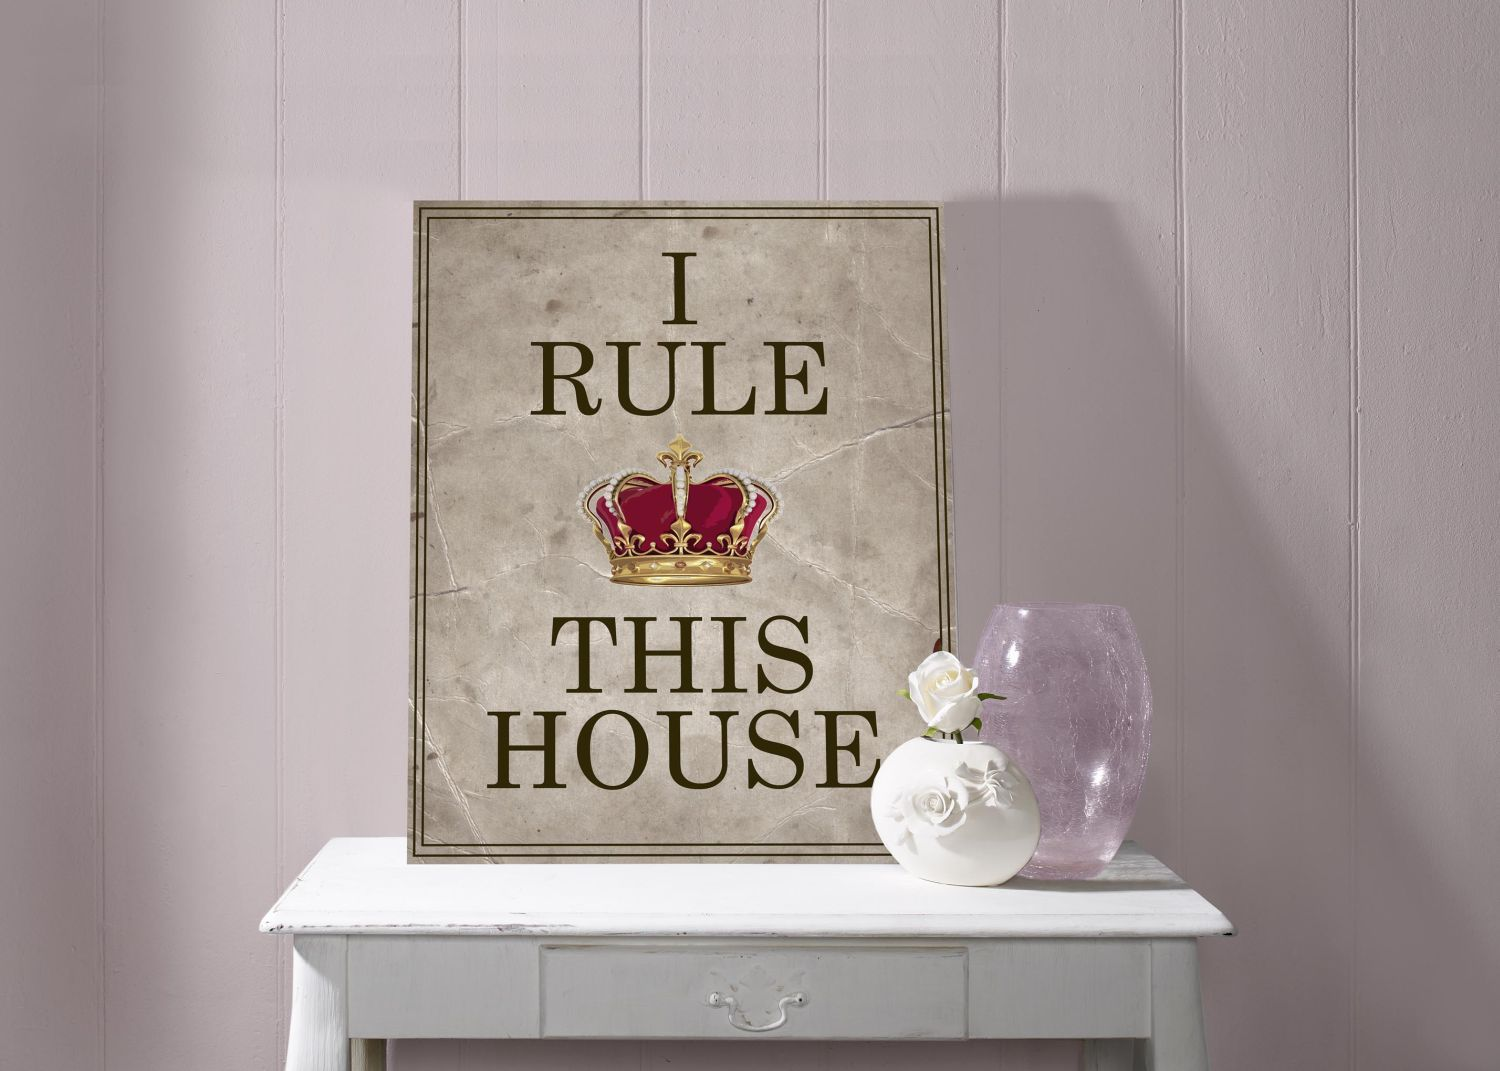 I rule this house wall art